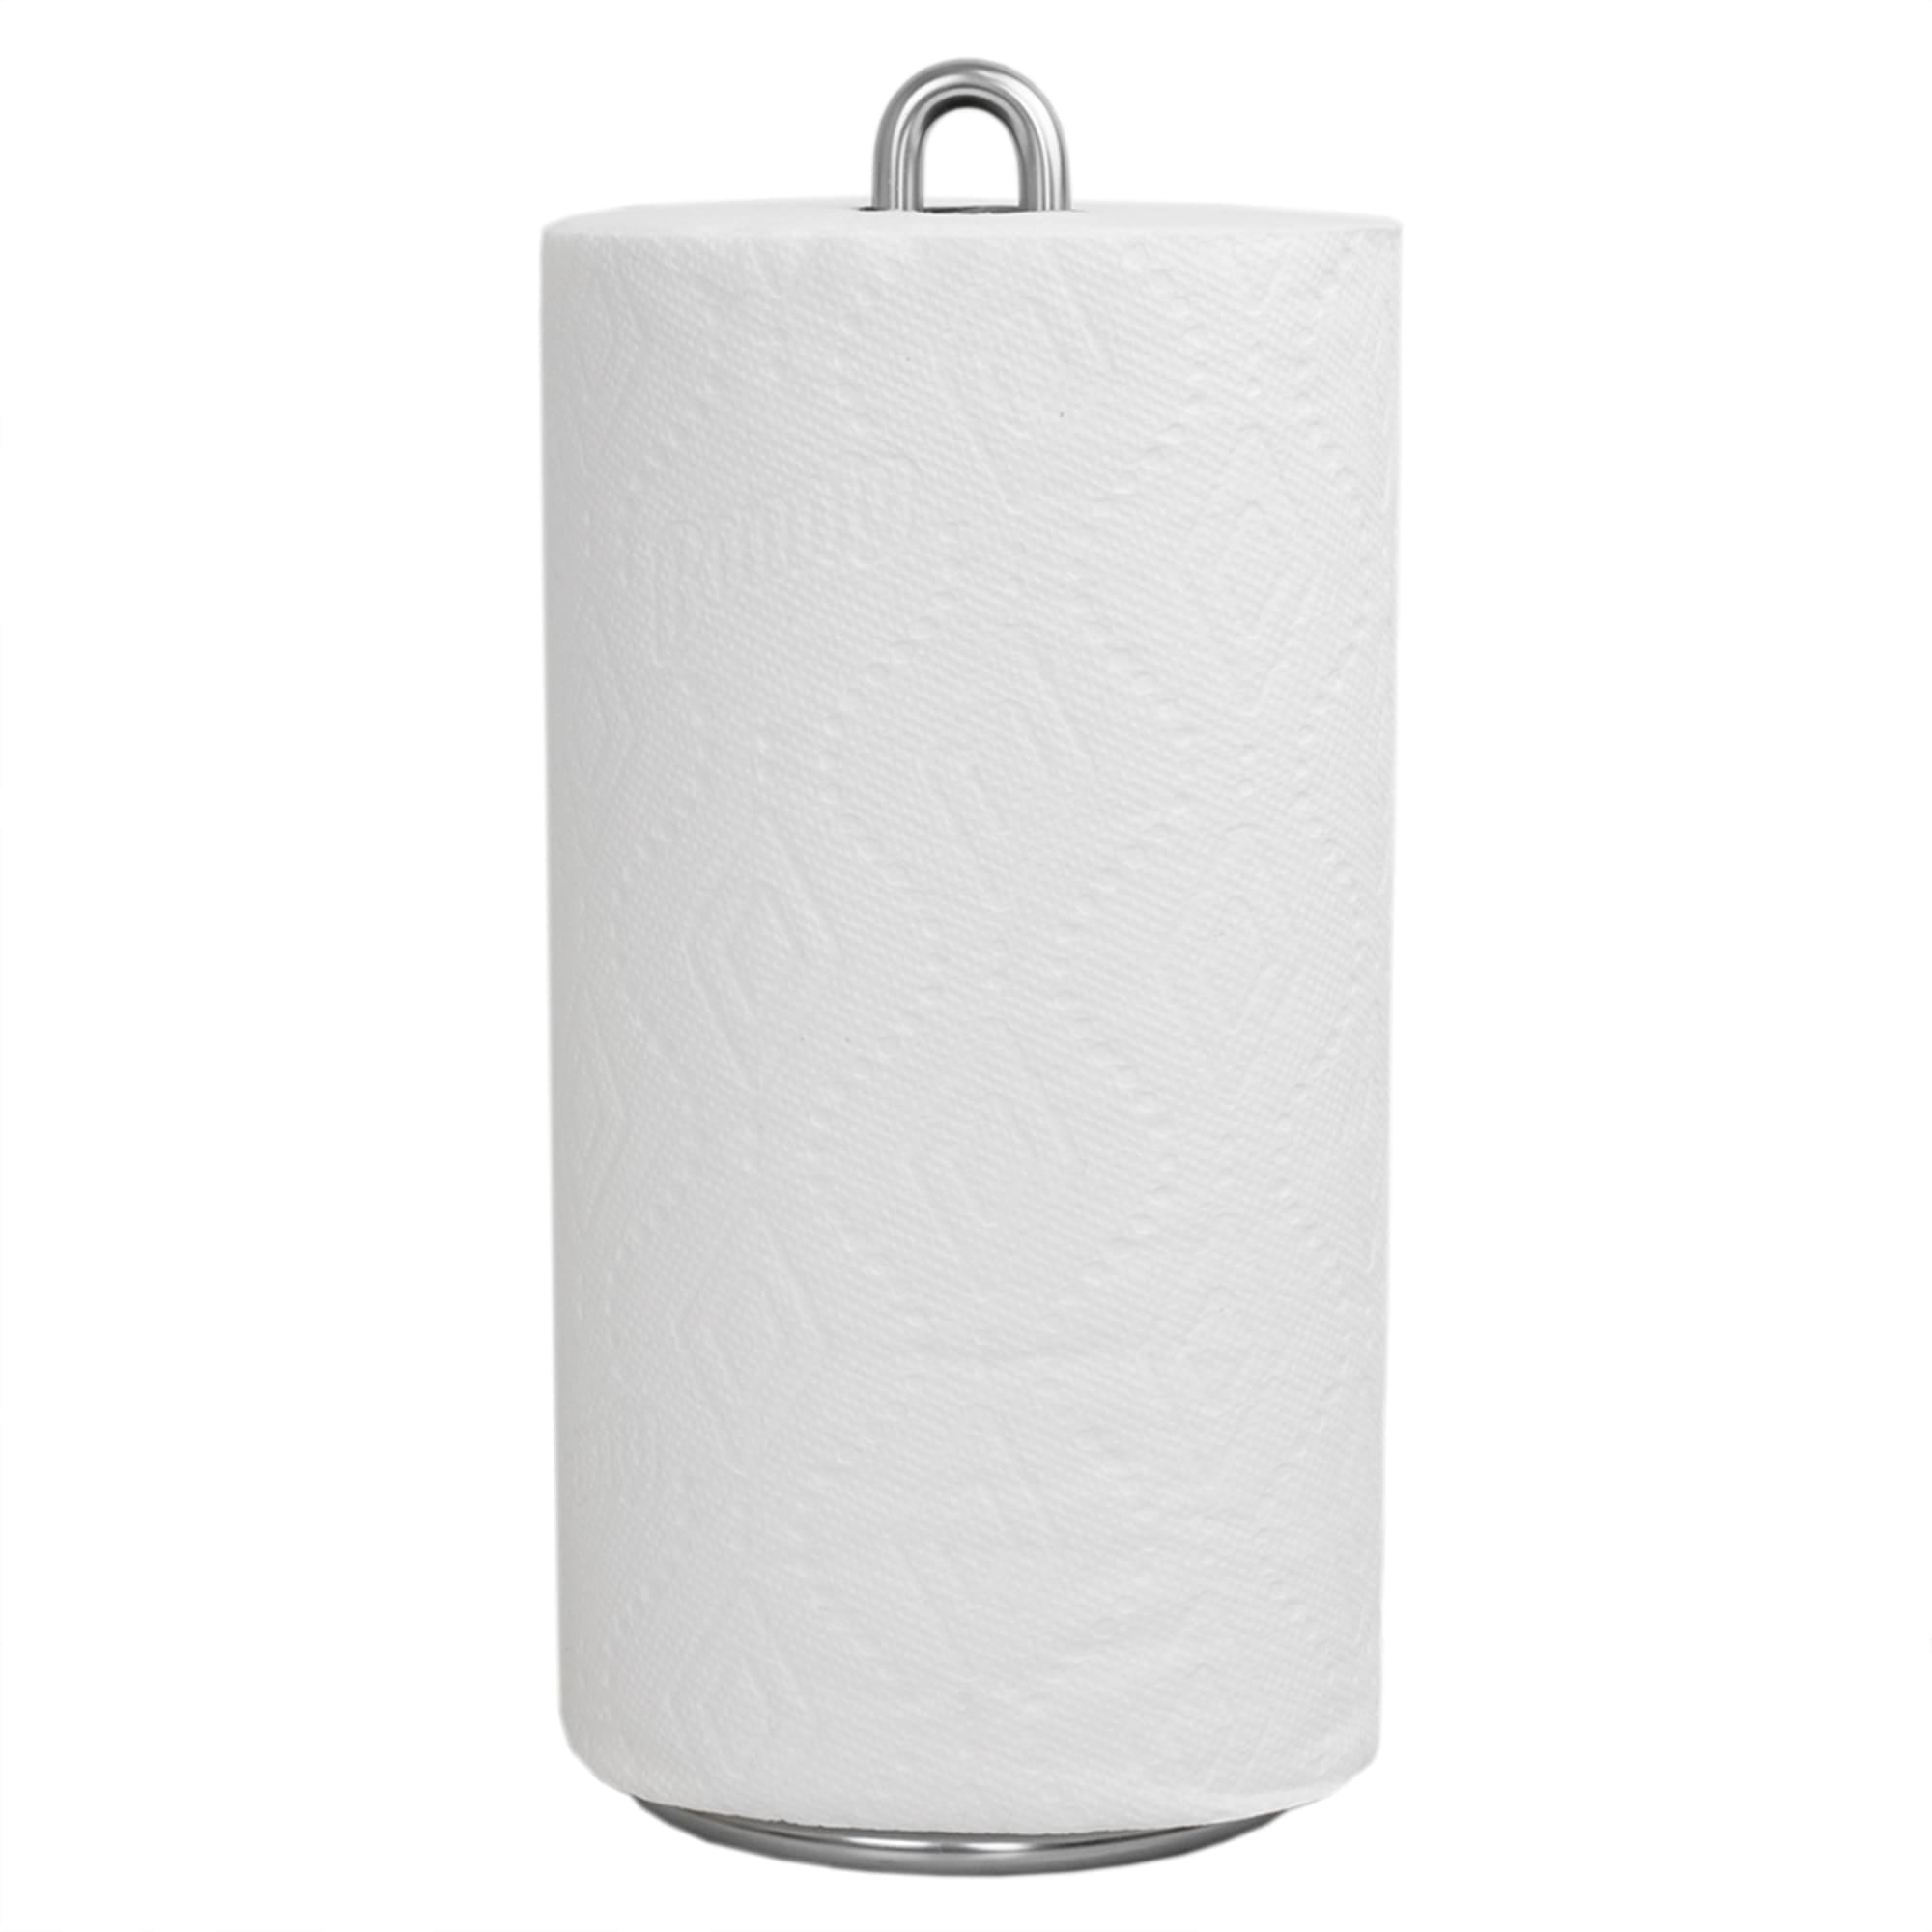 Simplicity Collection Paper Towel Holder, Satin Chrome